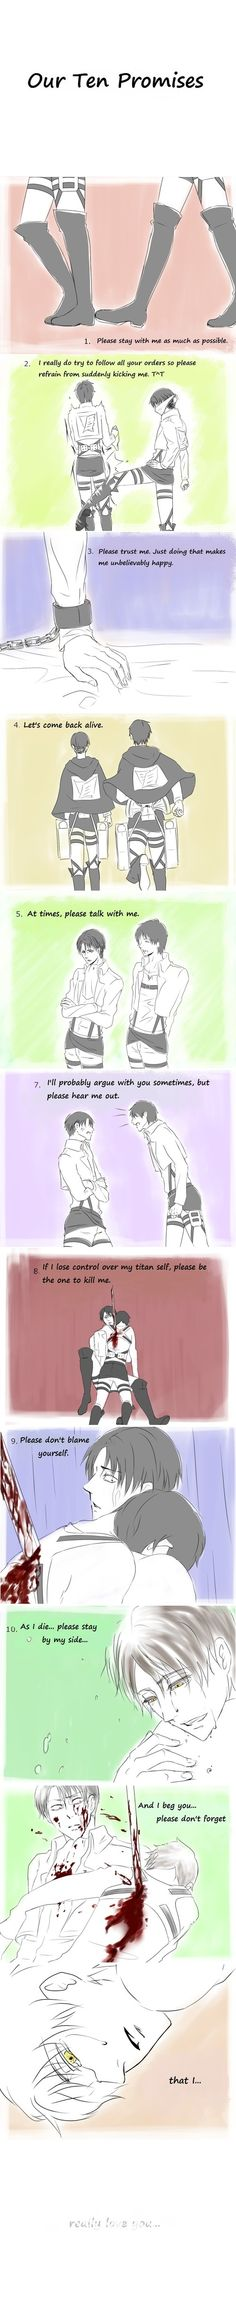 Our 10 Promises. Attack on Titan comic. original by: 驟雨 / translated by…